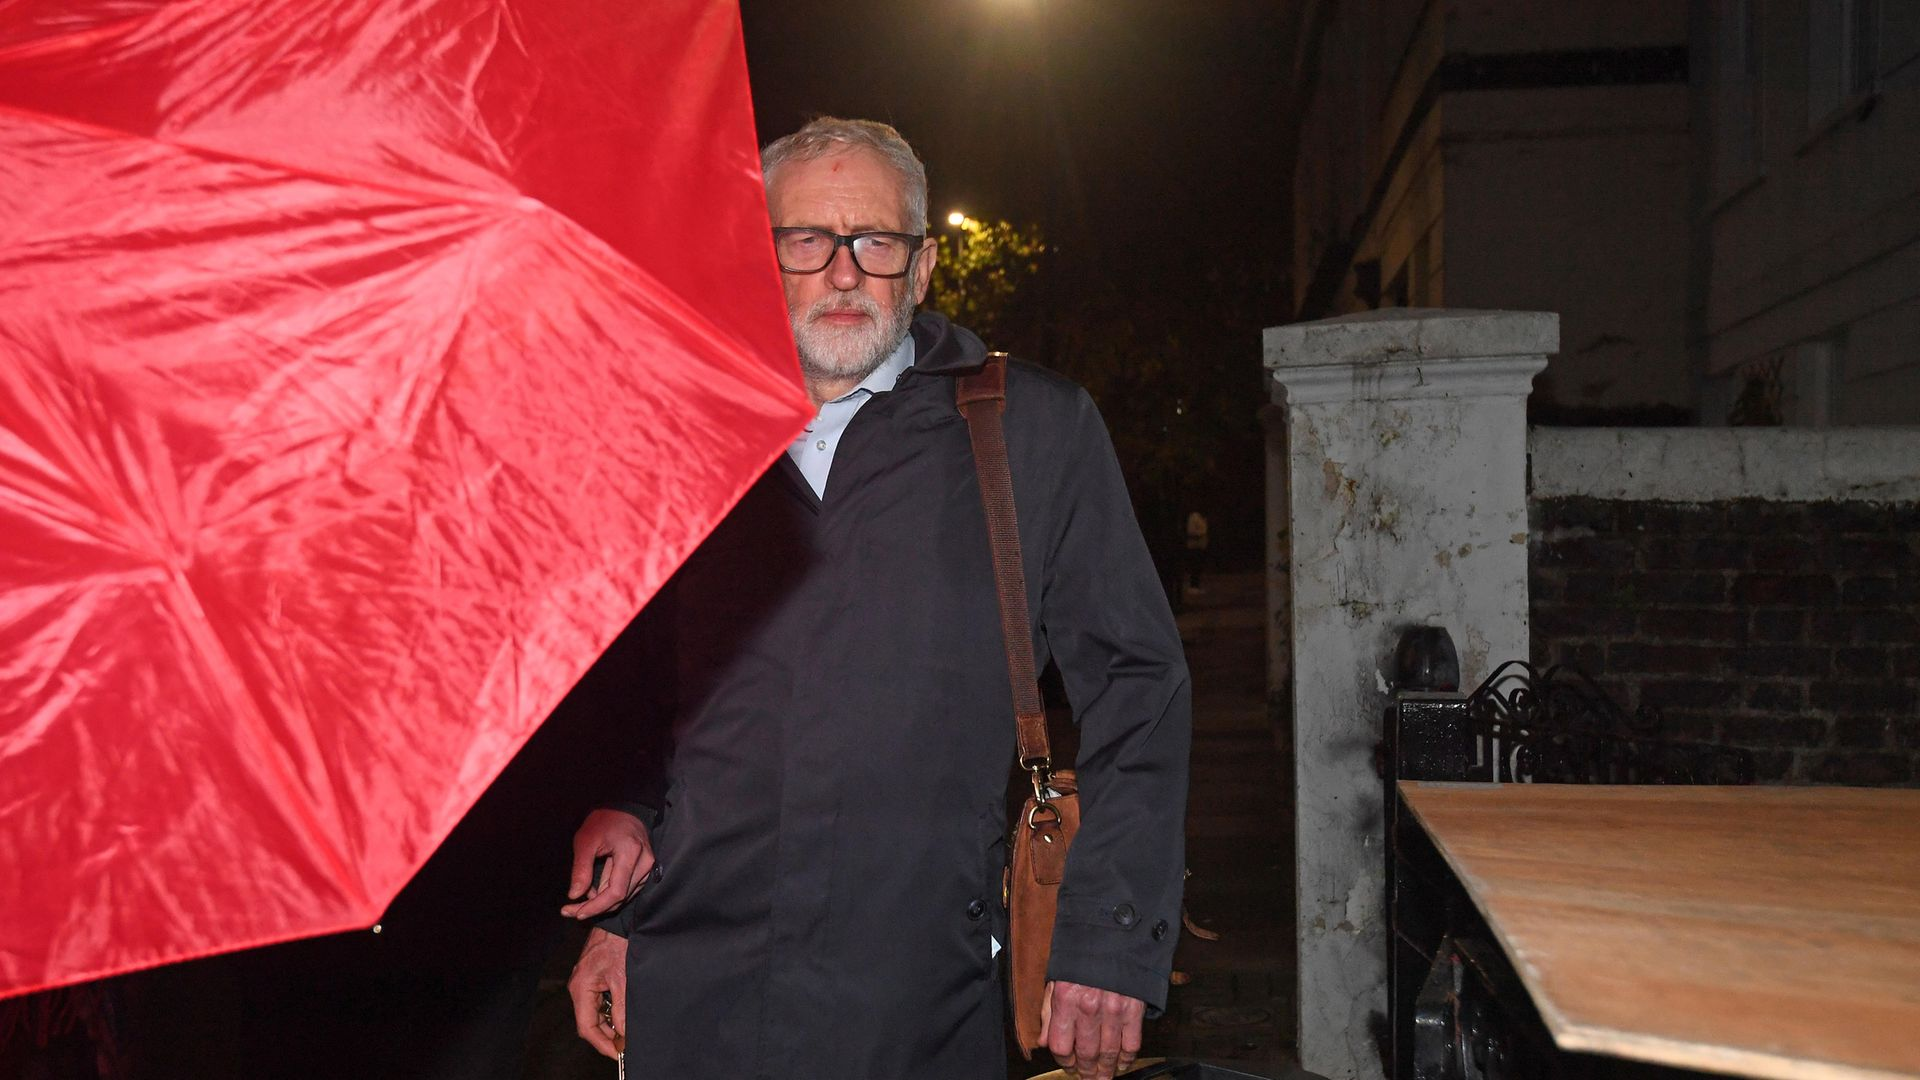 Former Labour leader Jeremy Corbyn arrives at his house in North London - Credit: PA